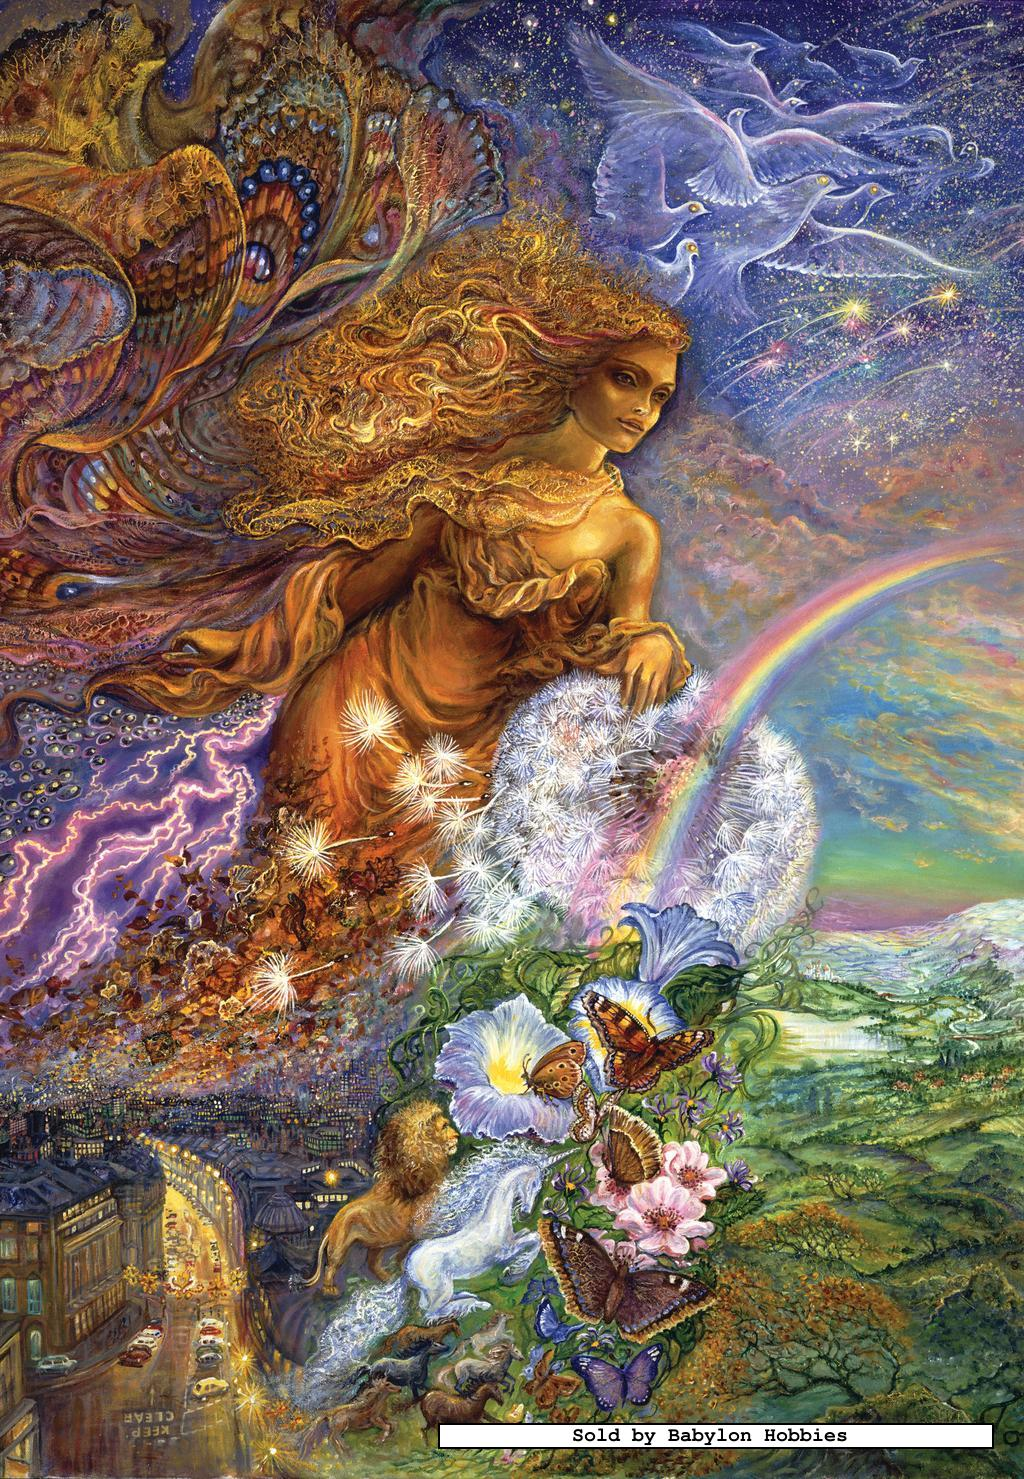 500 pcs jigsaw puzzle josephine wall wind of change glow in the dark ebay. Black Bedroom Furniture Sets. Home Design Ideas